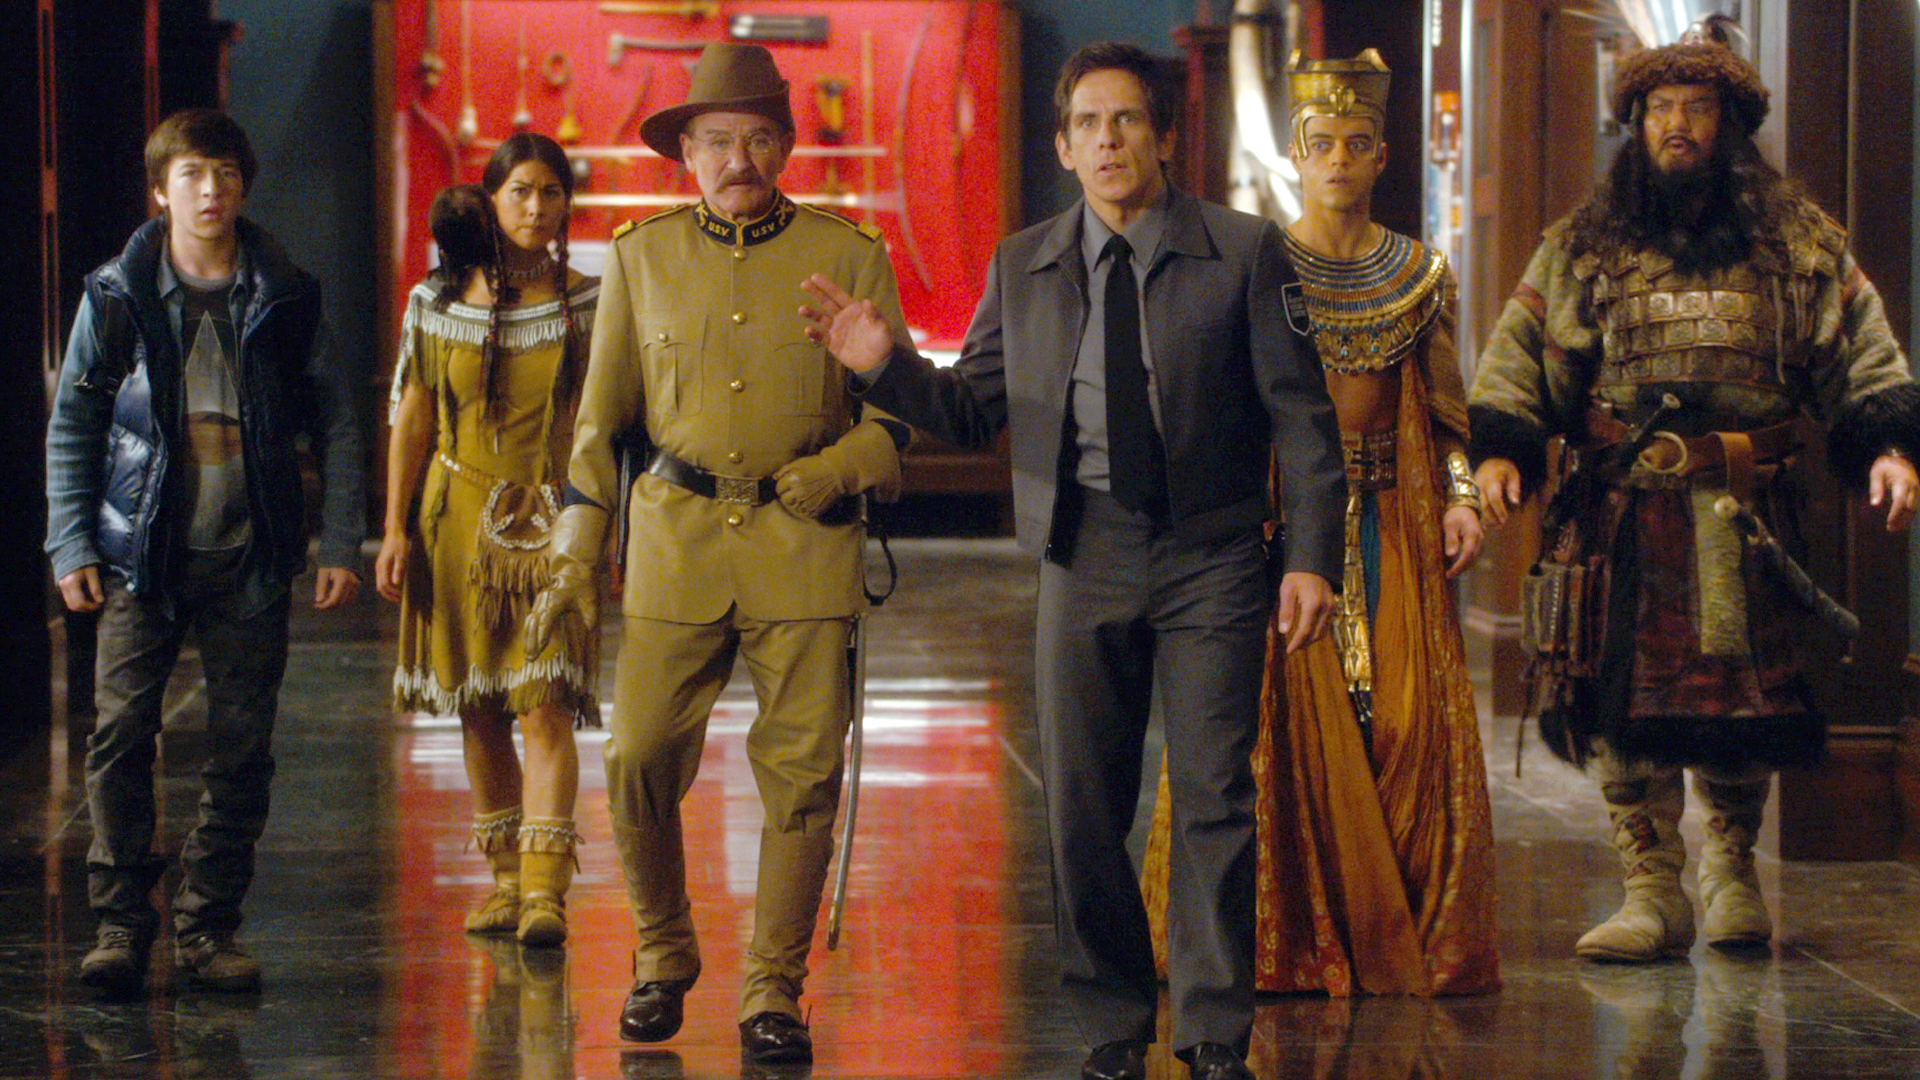 Night At The Museum: Secret Of The Tomb (2014) | Fandango